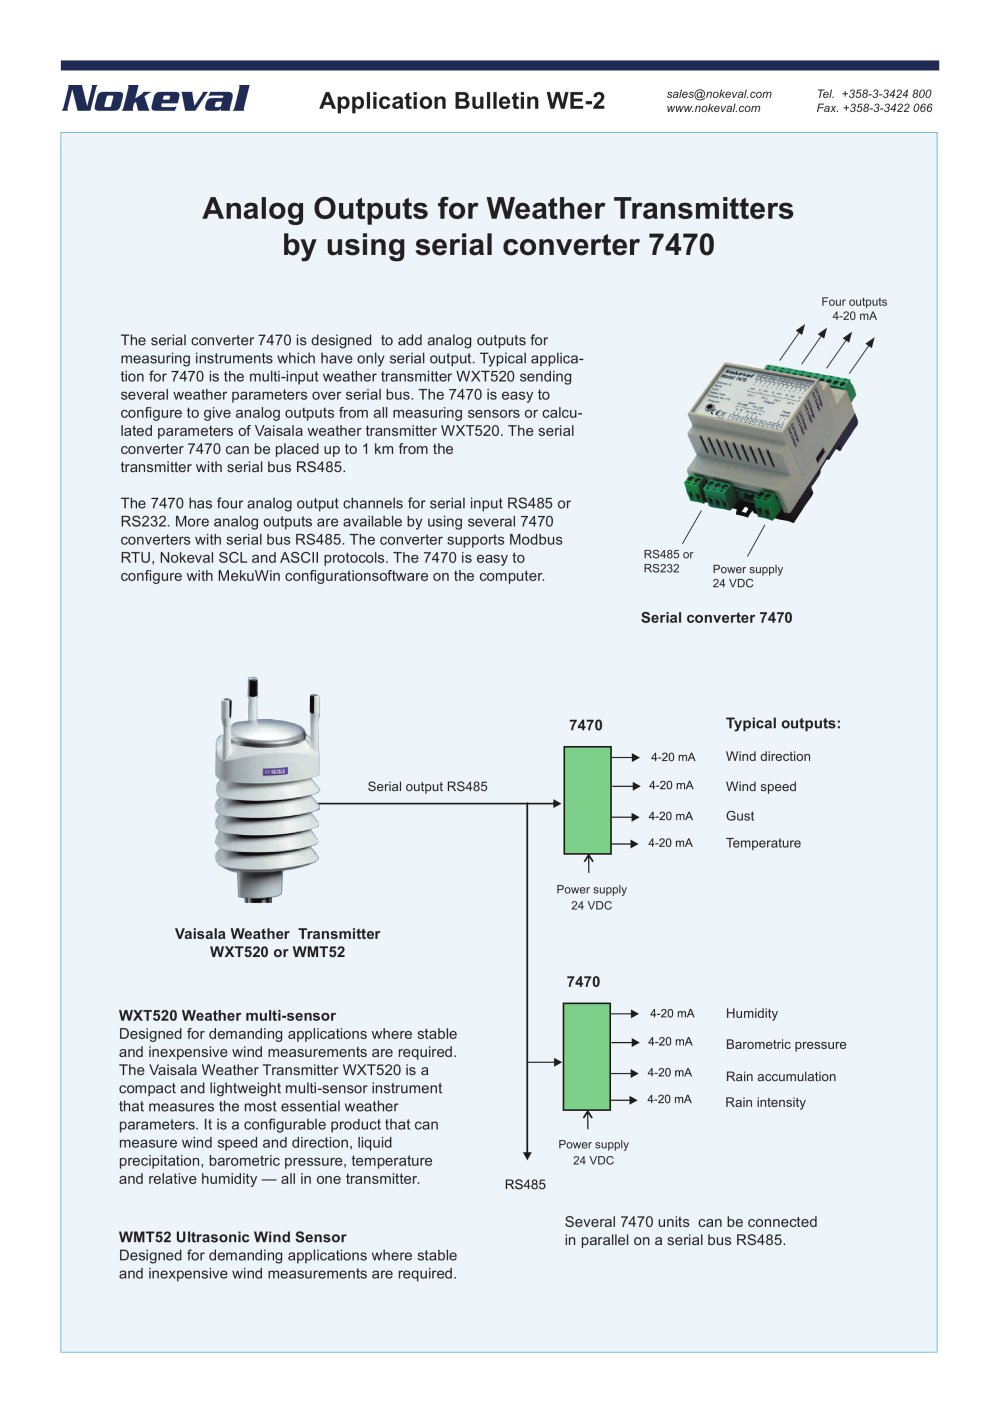 Analog Outputs For Weather Transmitters By Using Serial Converter To Parallel 7470 1 Pages